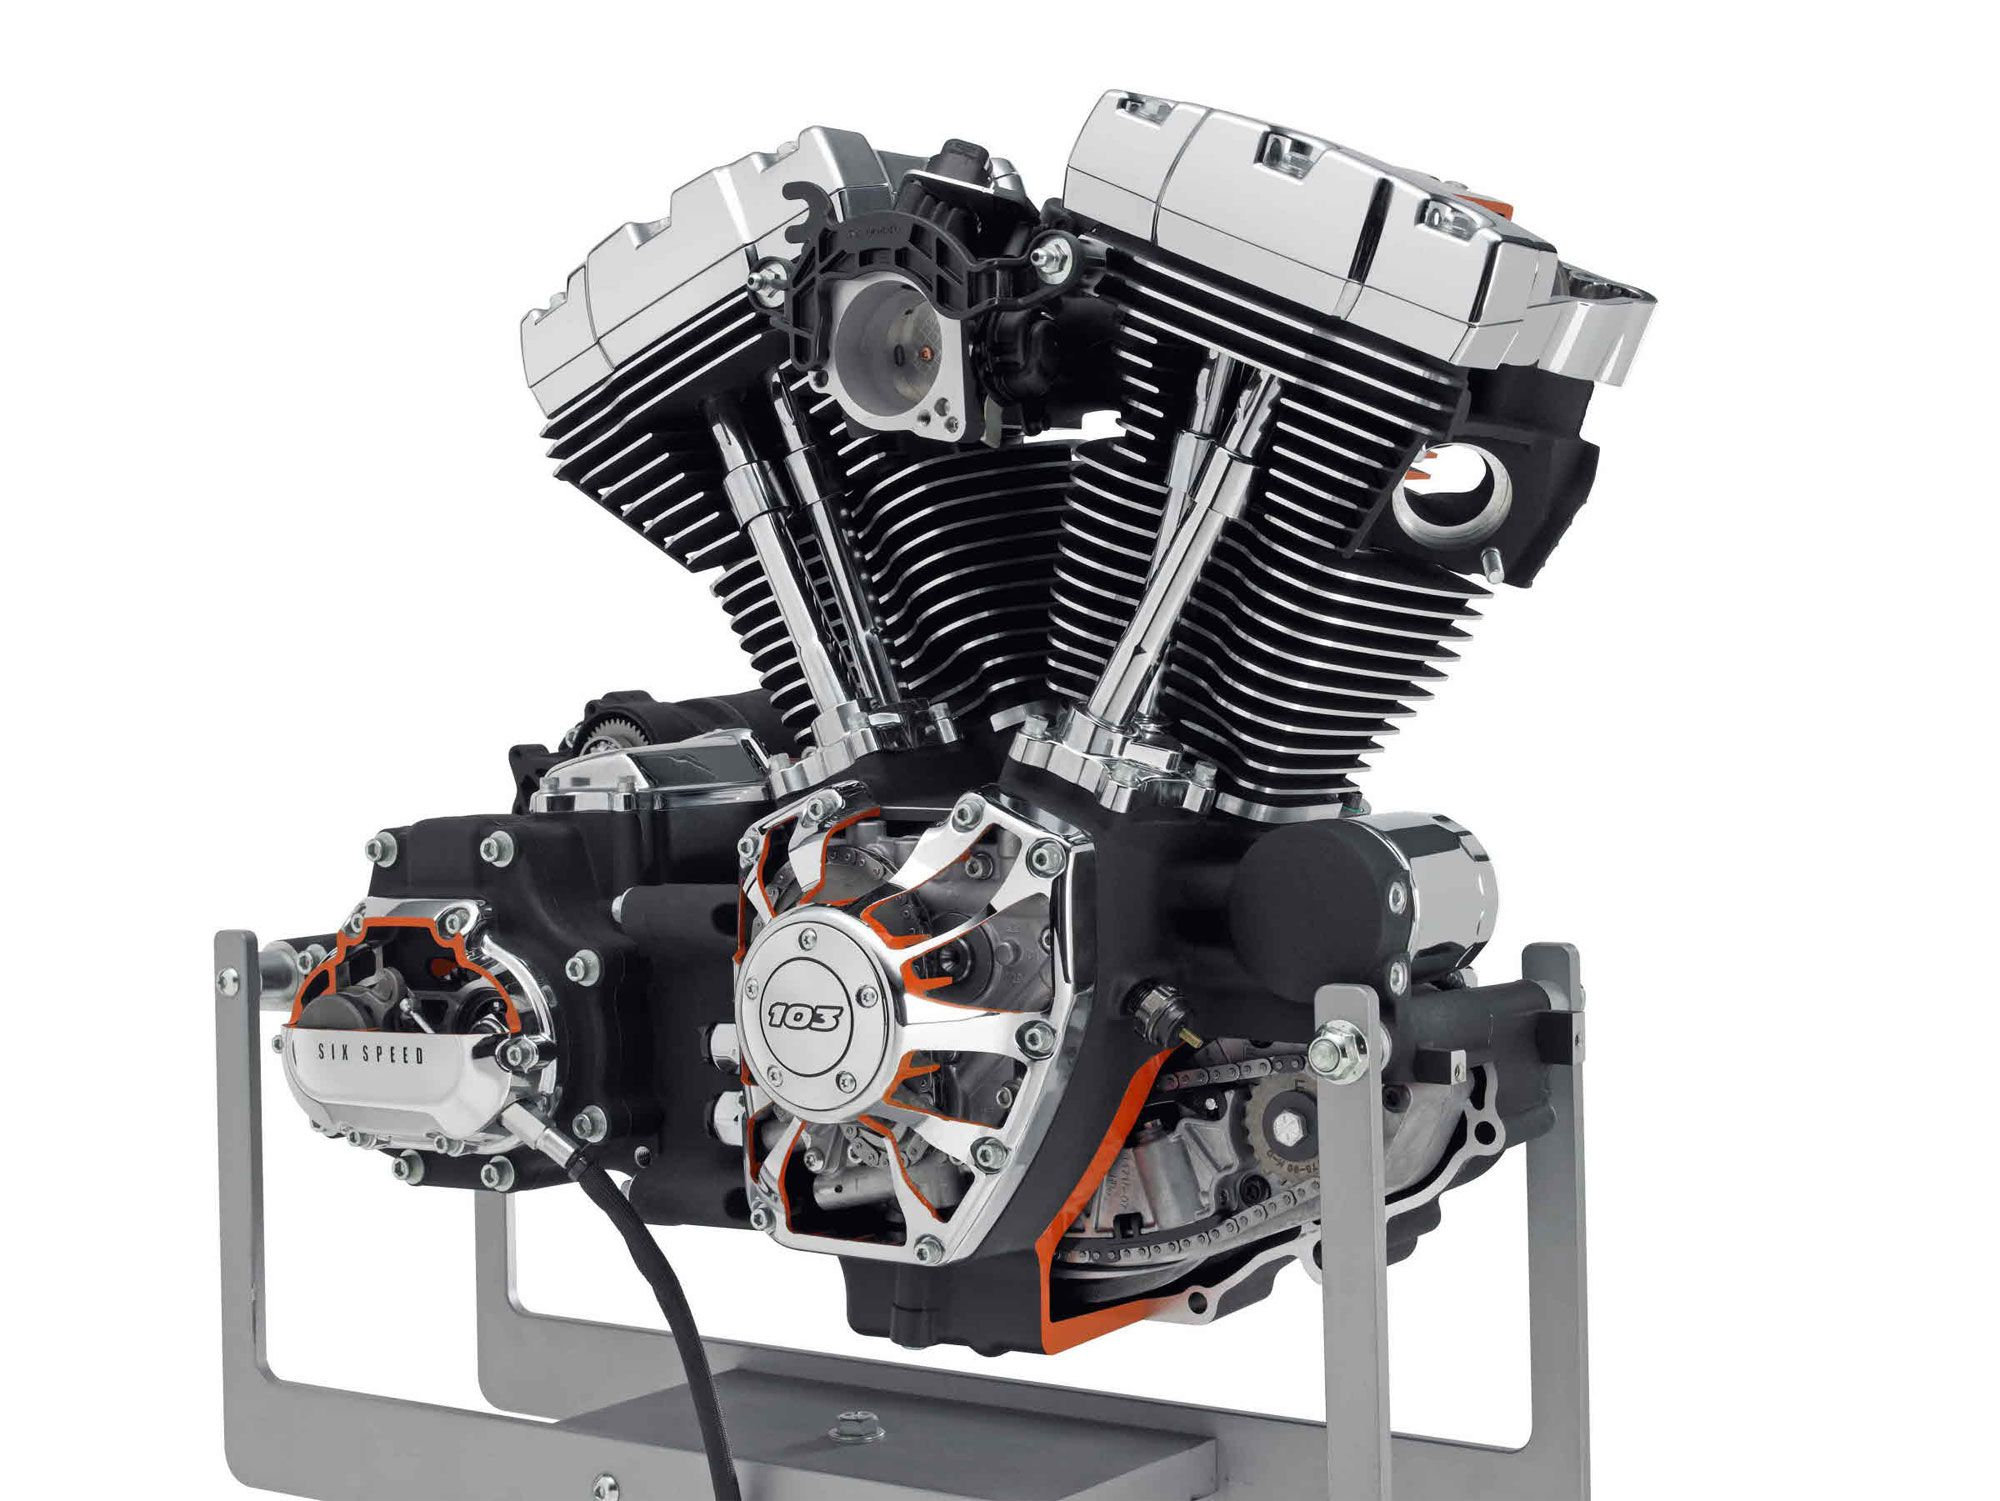 2016 harley davidson's designed with more power | motorcycle